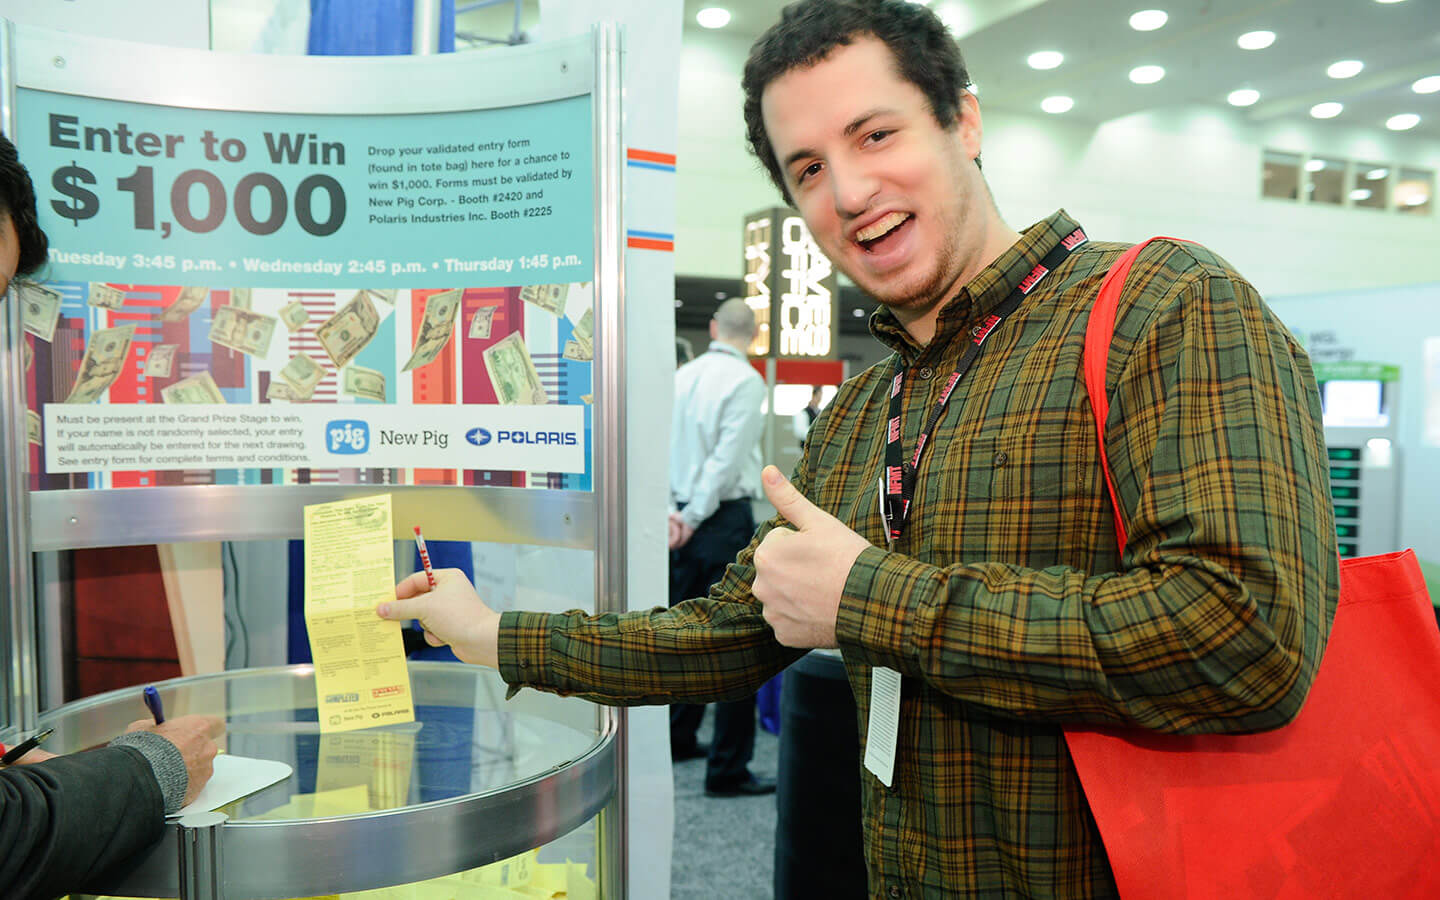 Attendee giving thumbs up as he enters daily cash drawing